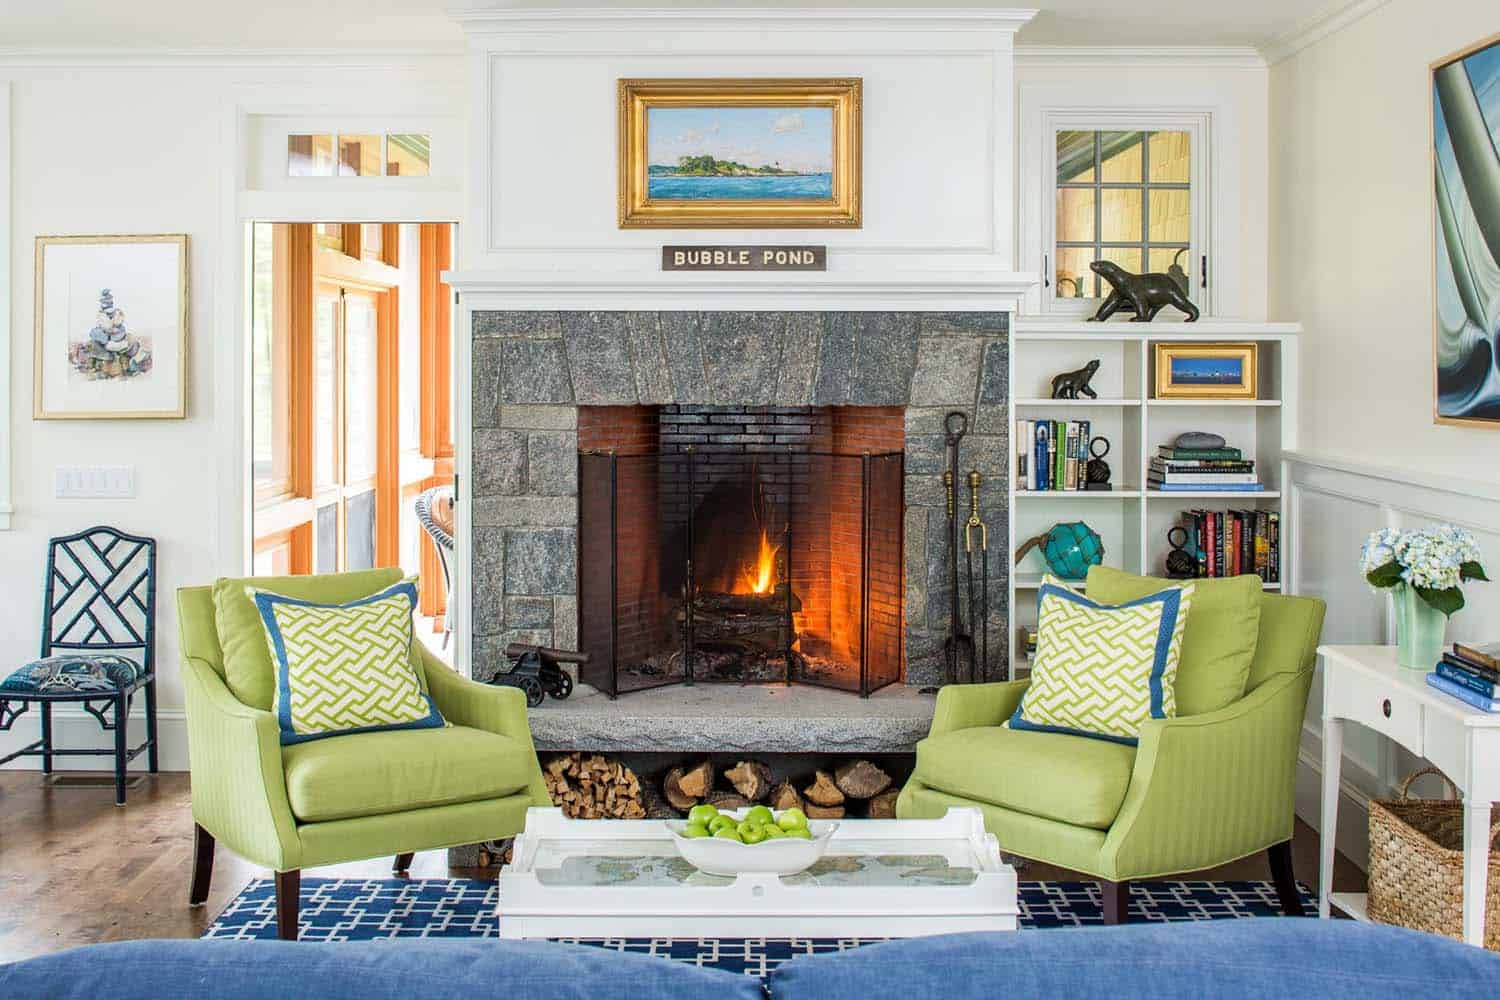 Shingle Style Cottage-WMH Architects-03-1 Kindesign